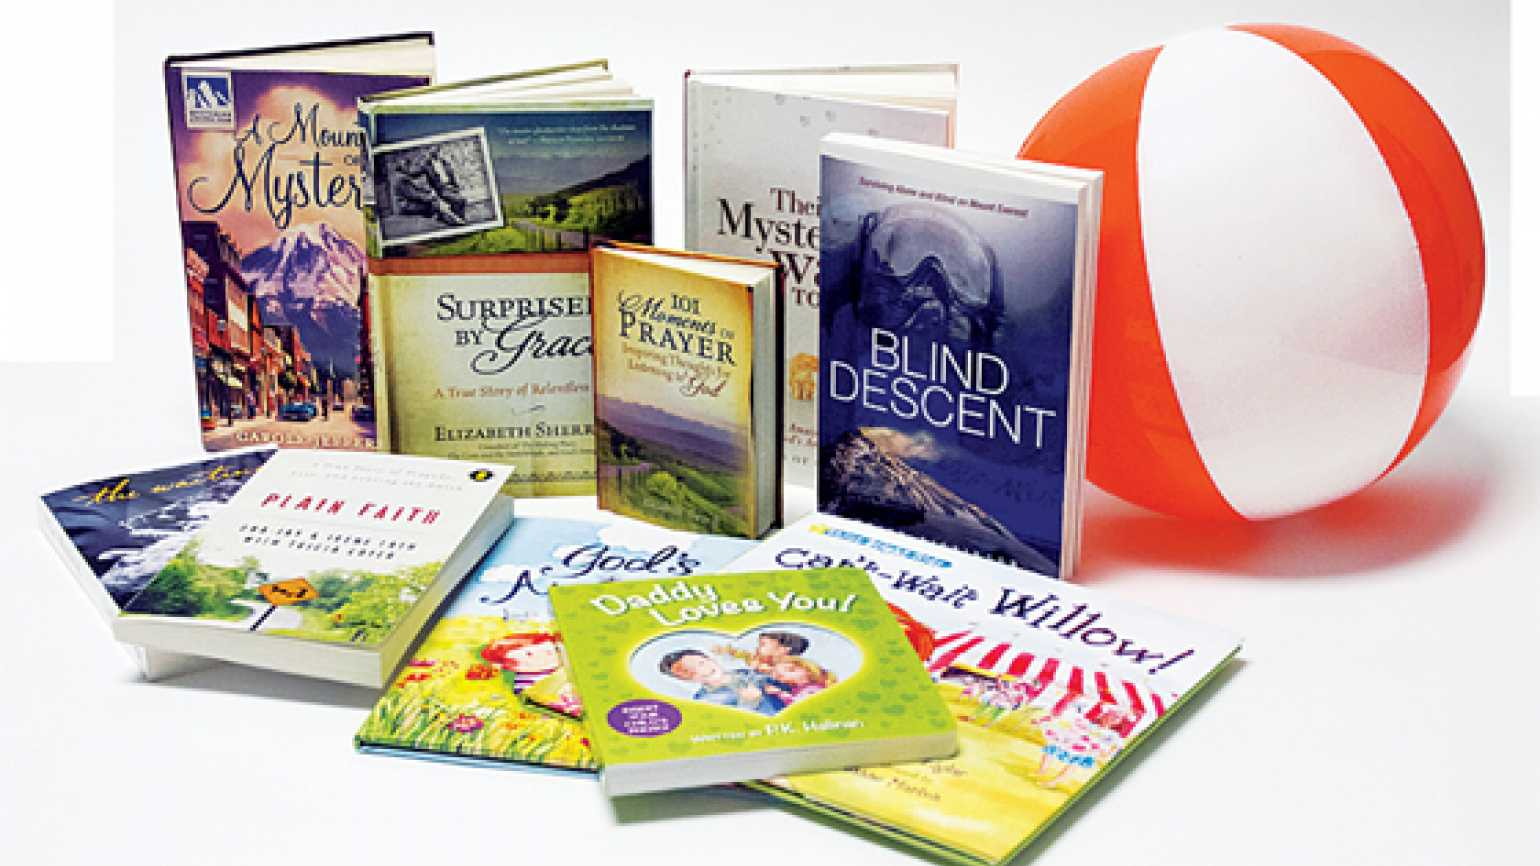 Some Summer Reading titles from Guideposts Books and a beach ball